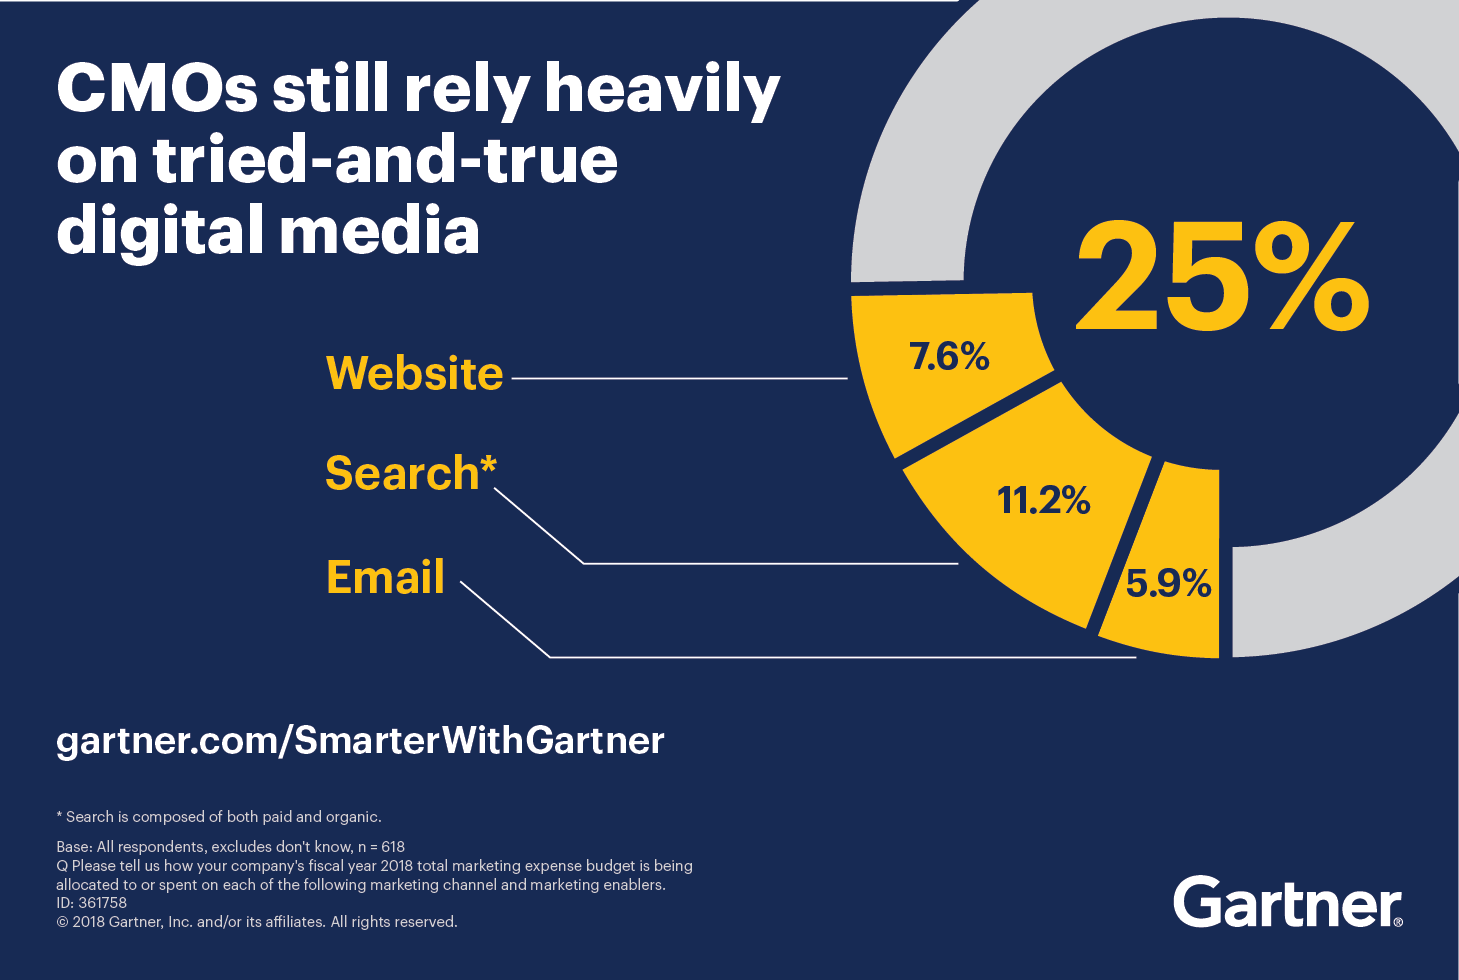 CMOs still rely heavily on tried-and-true digital media - 7.6% website, 11.2% search, 5.9% email.